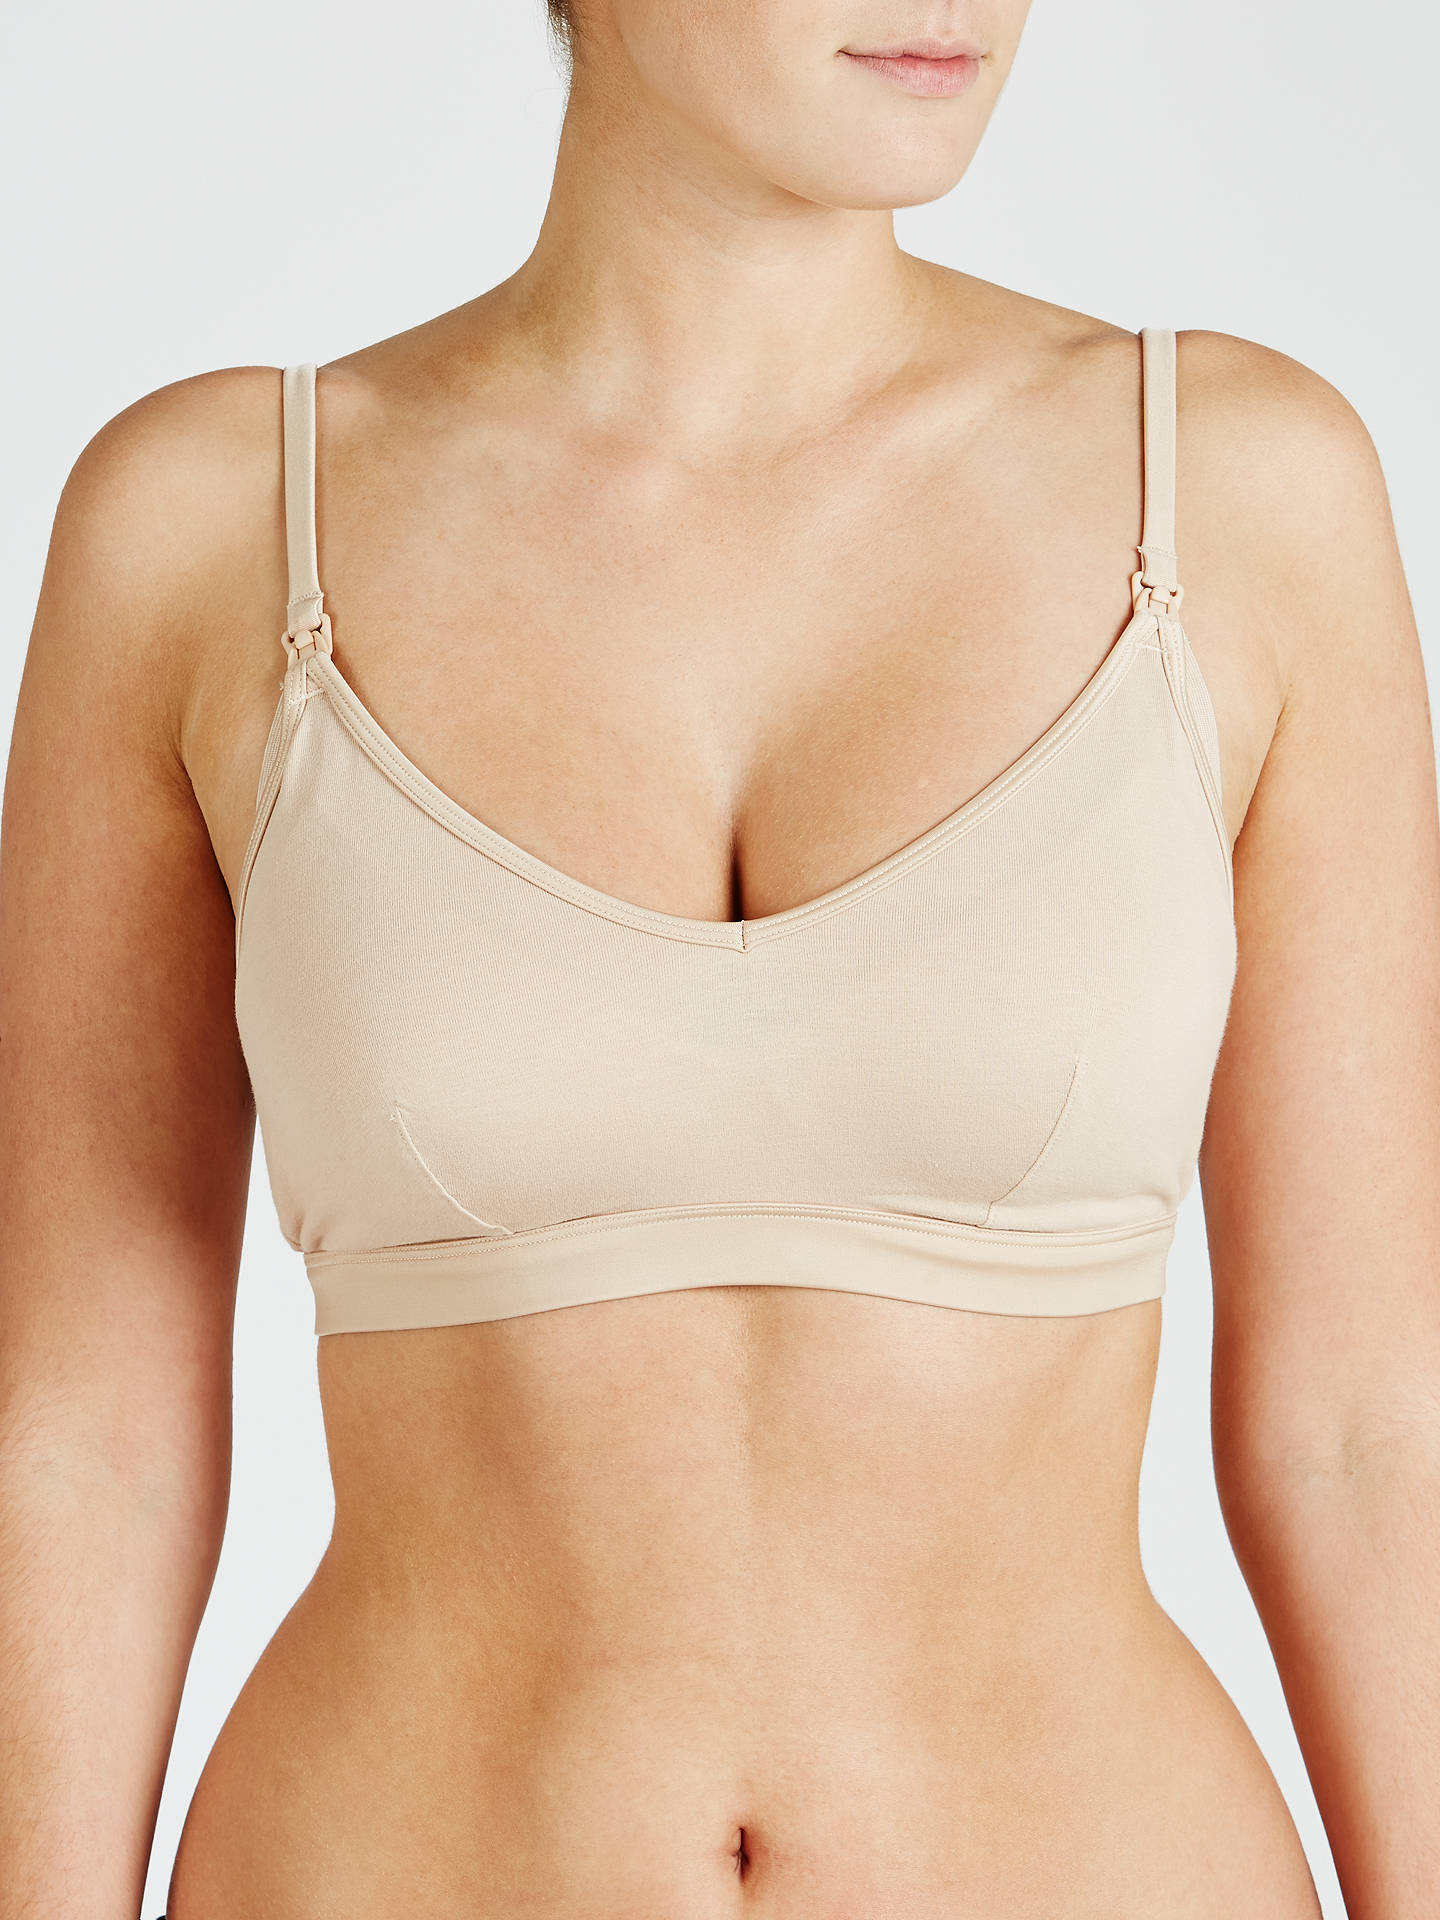 BuyJohn Lewis & Partners Maternity Satin Band Crop Top Nursing Bra, Nude, M Online at johnlewis.com